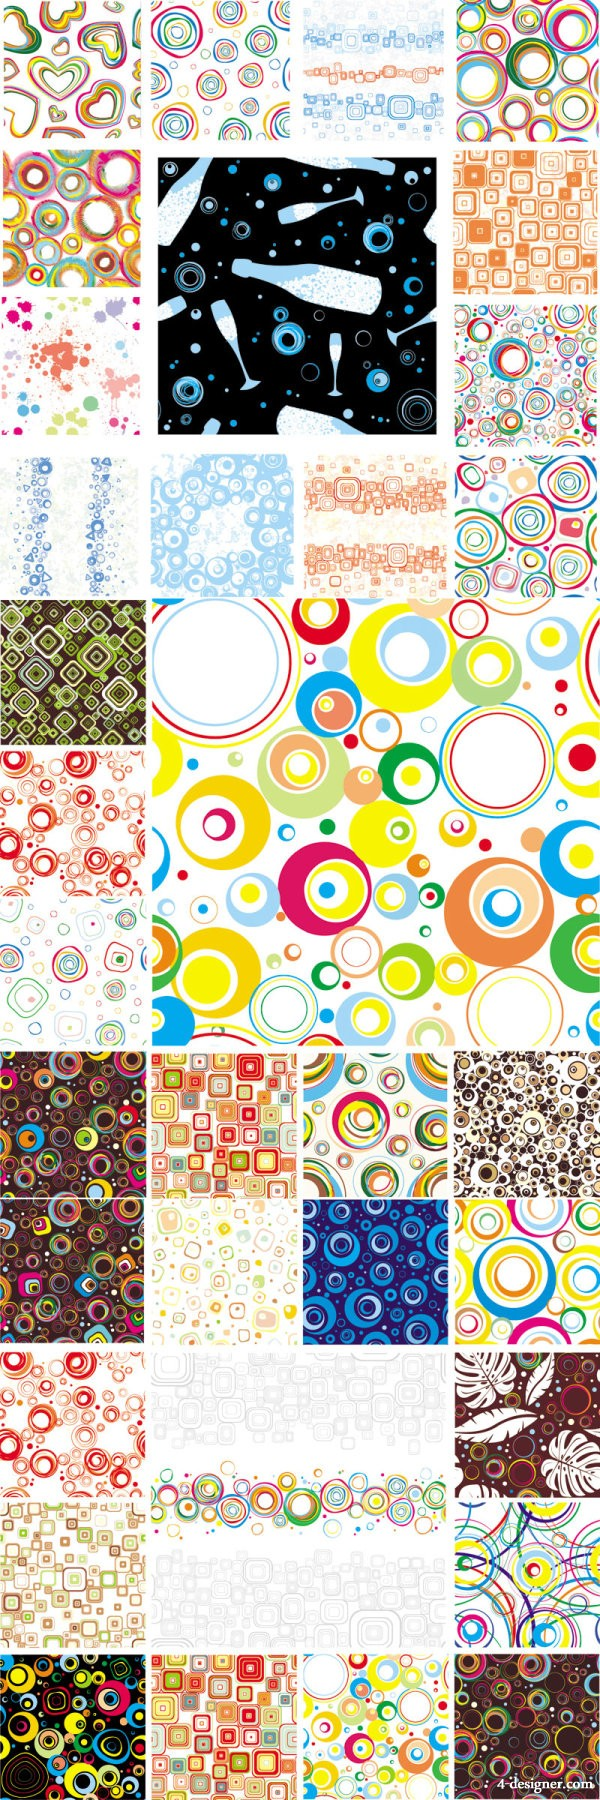 Kinds of colorful graphic pattern Vector